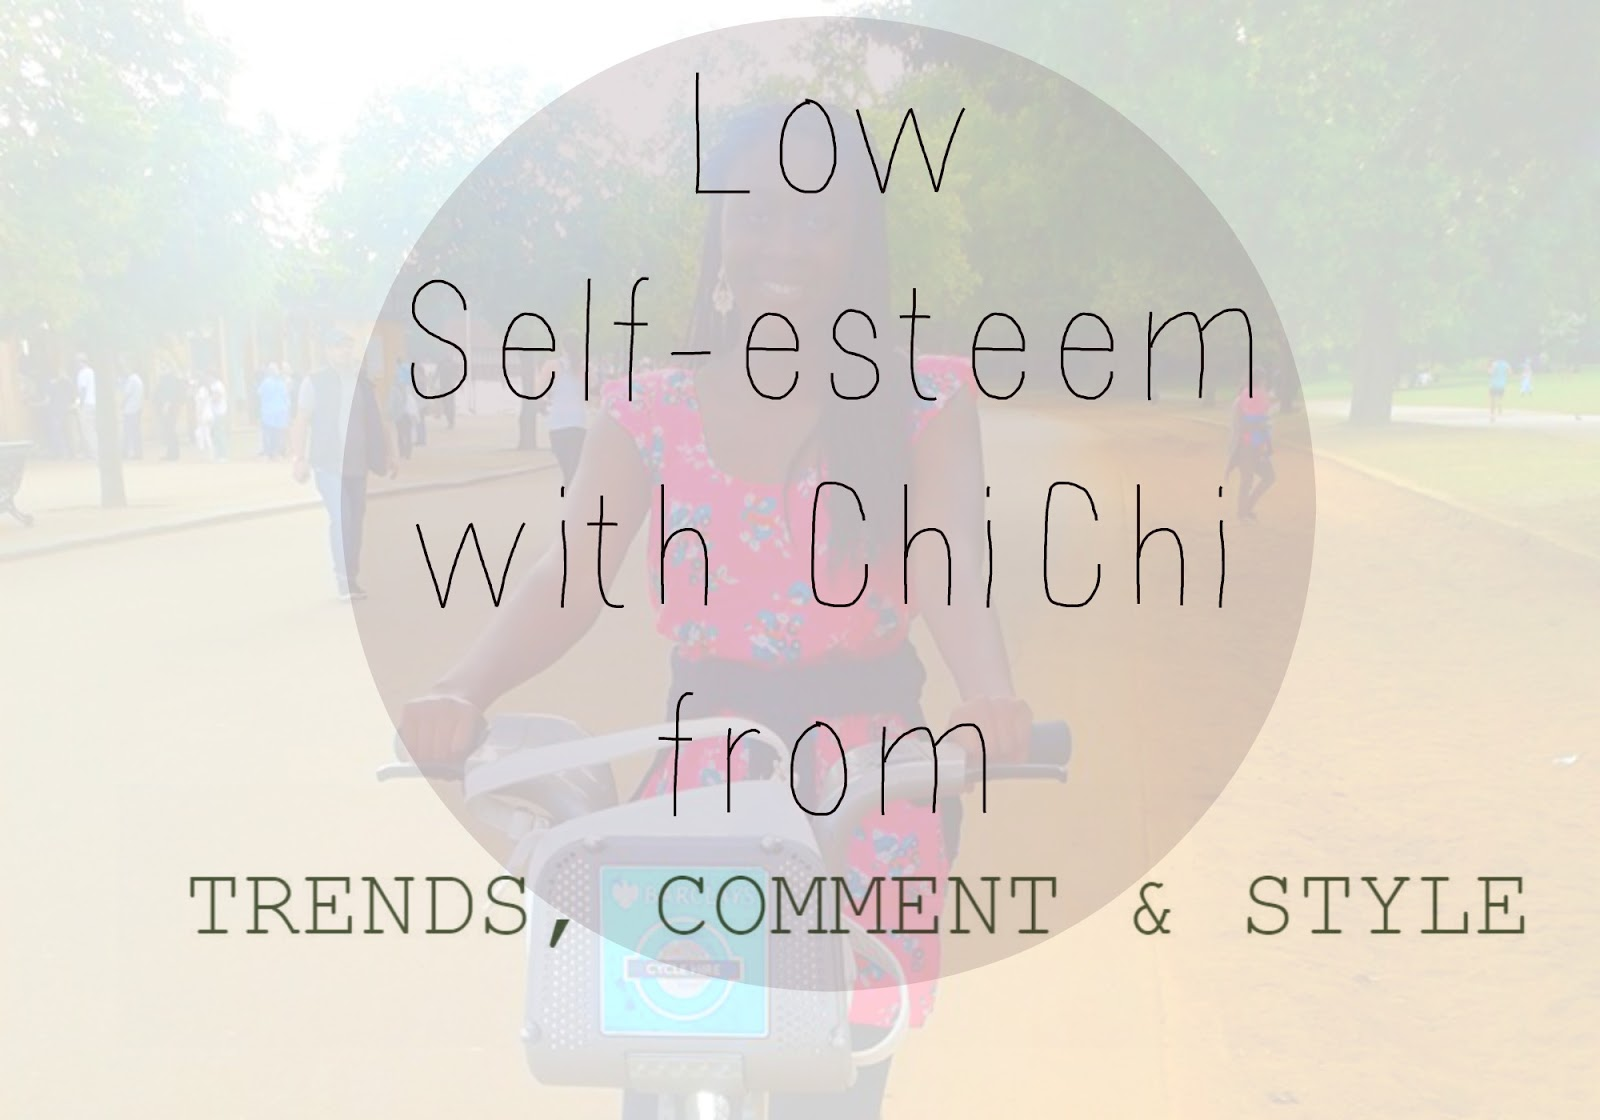 Low self-esteem and confidence